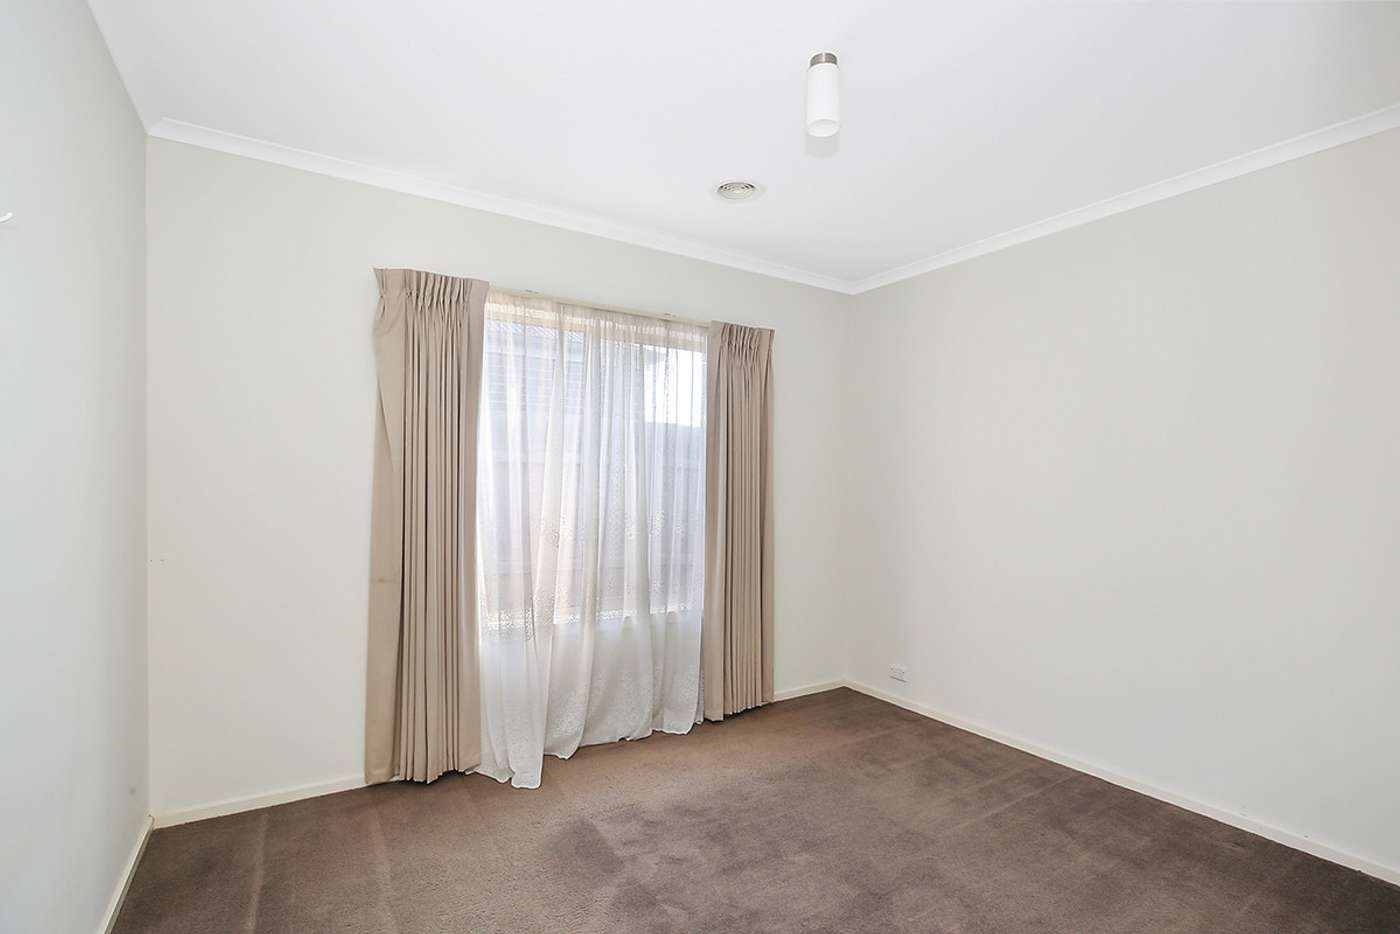 Sixth view of Homely house listing, 105 Church Street, Colac VIC 3250